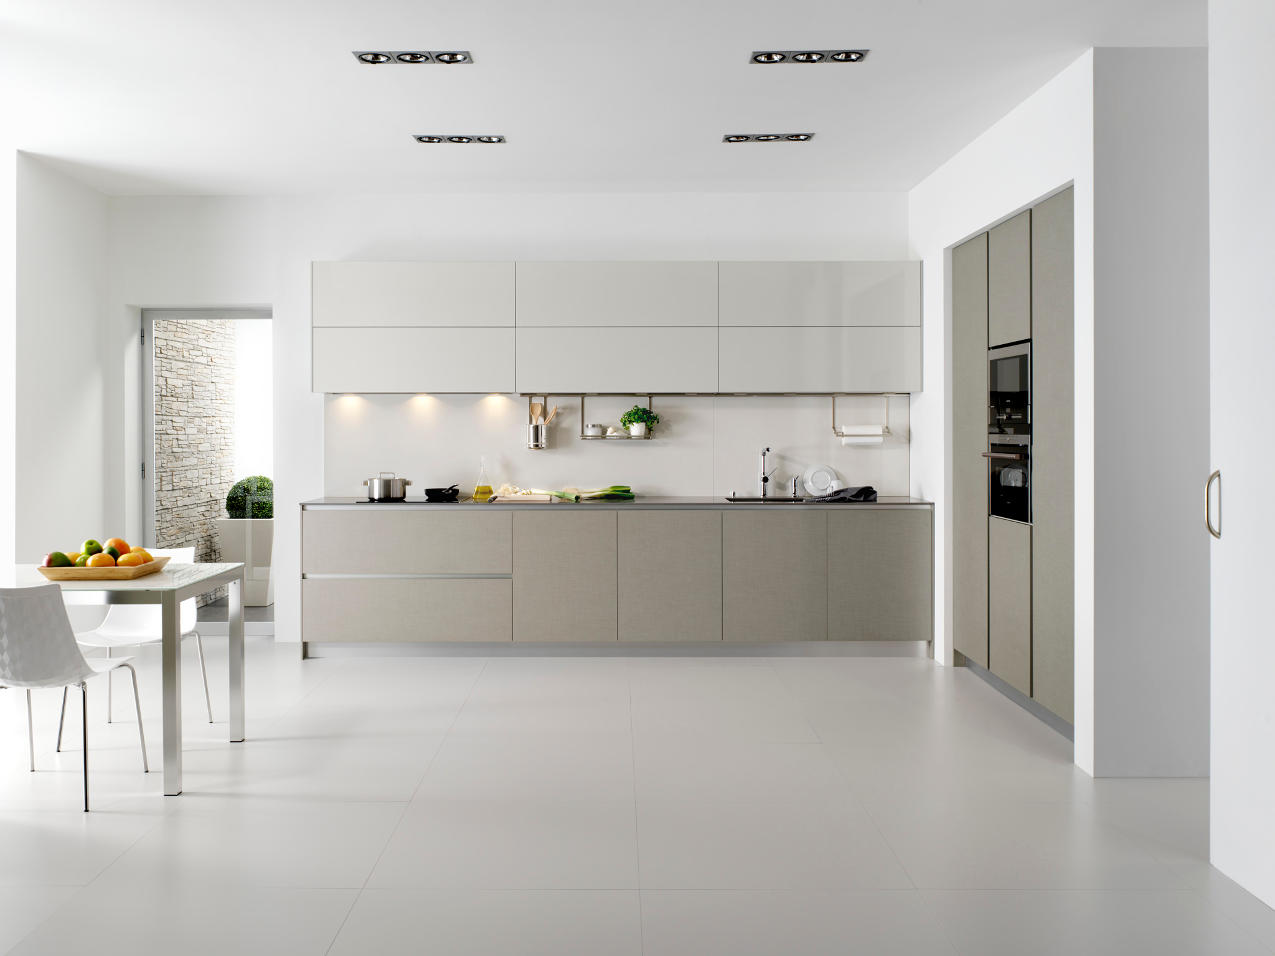 Cocina Dica Serie45 Lino Natural - Vista General